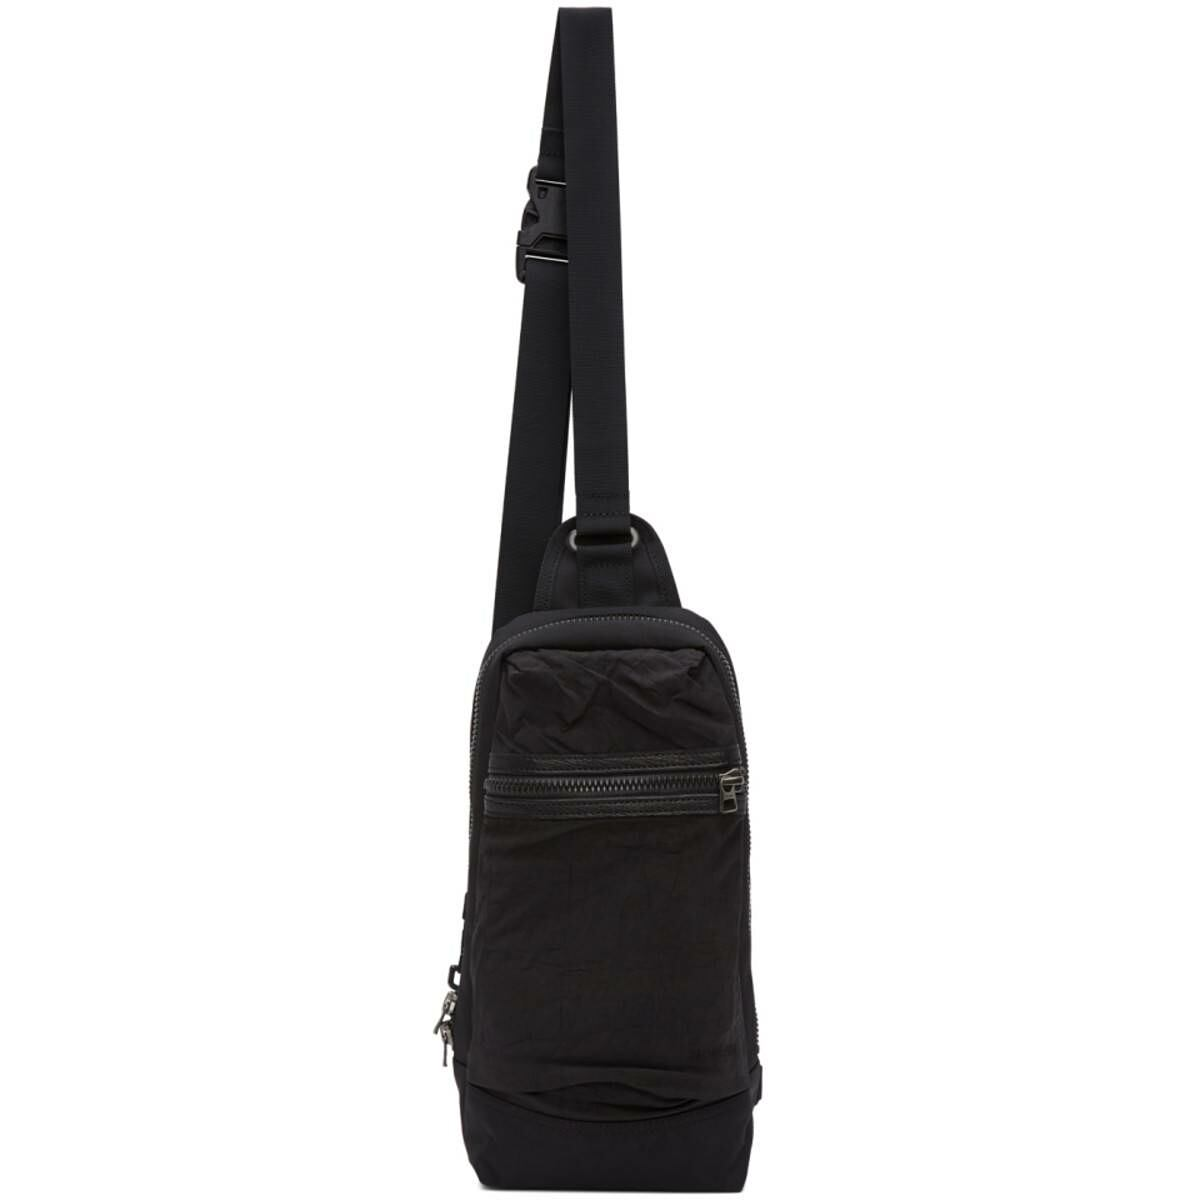 Master-Piece Co Black Rebirth Project Edition Recycled Airbag Messenger Bag Ssense USA MEN Men ACCESSORIES Mens BAGS